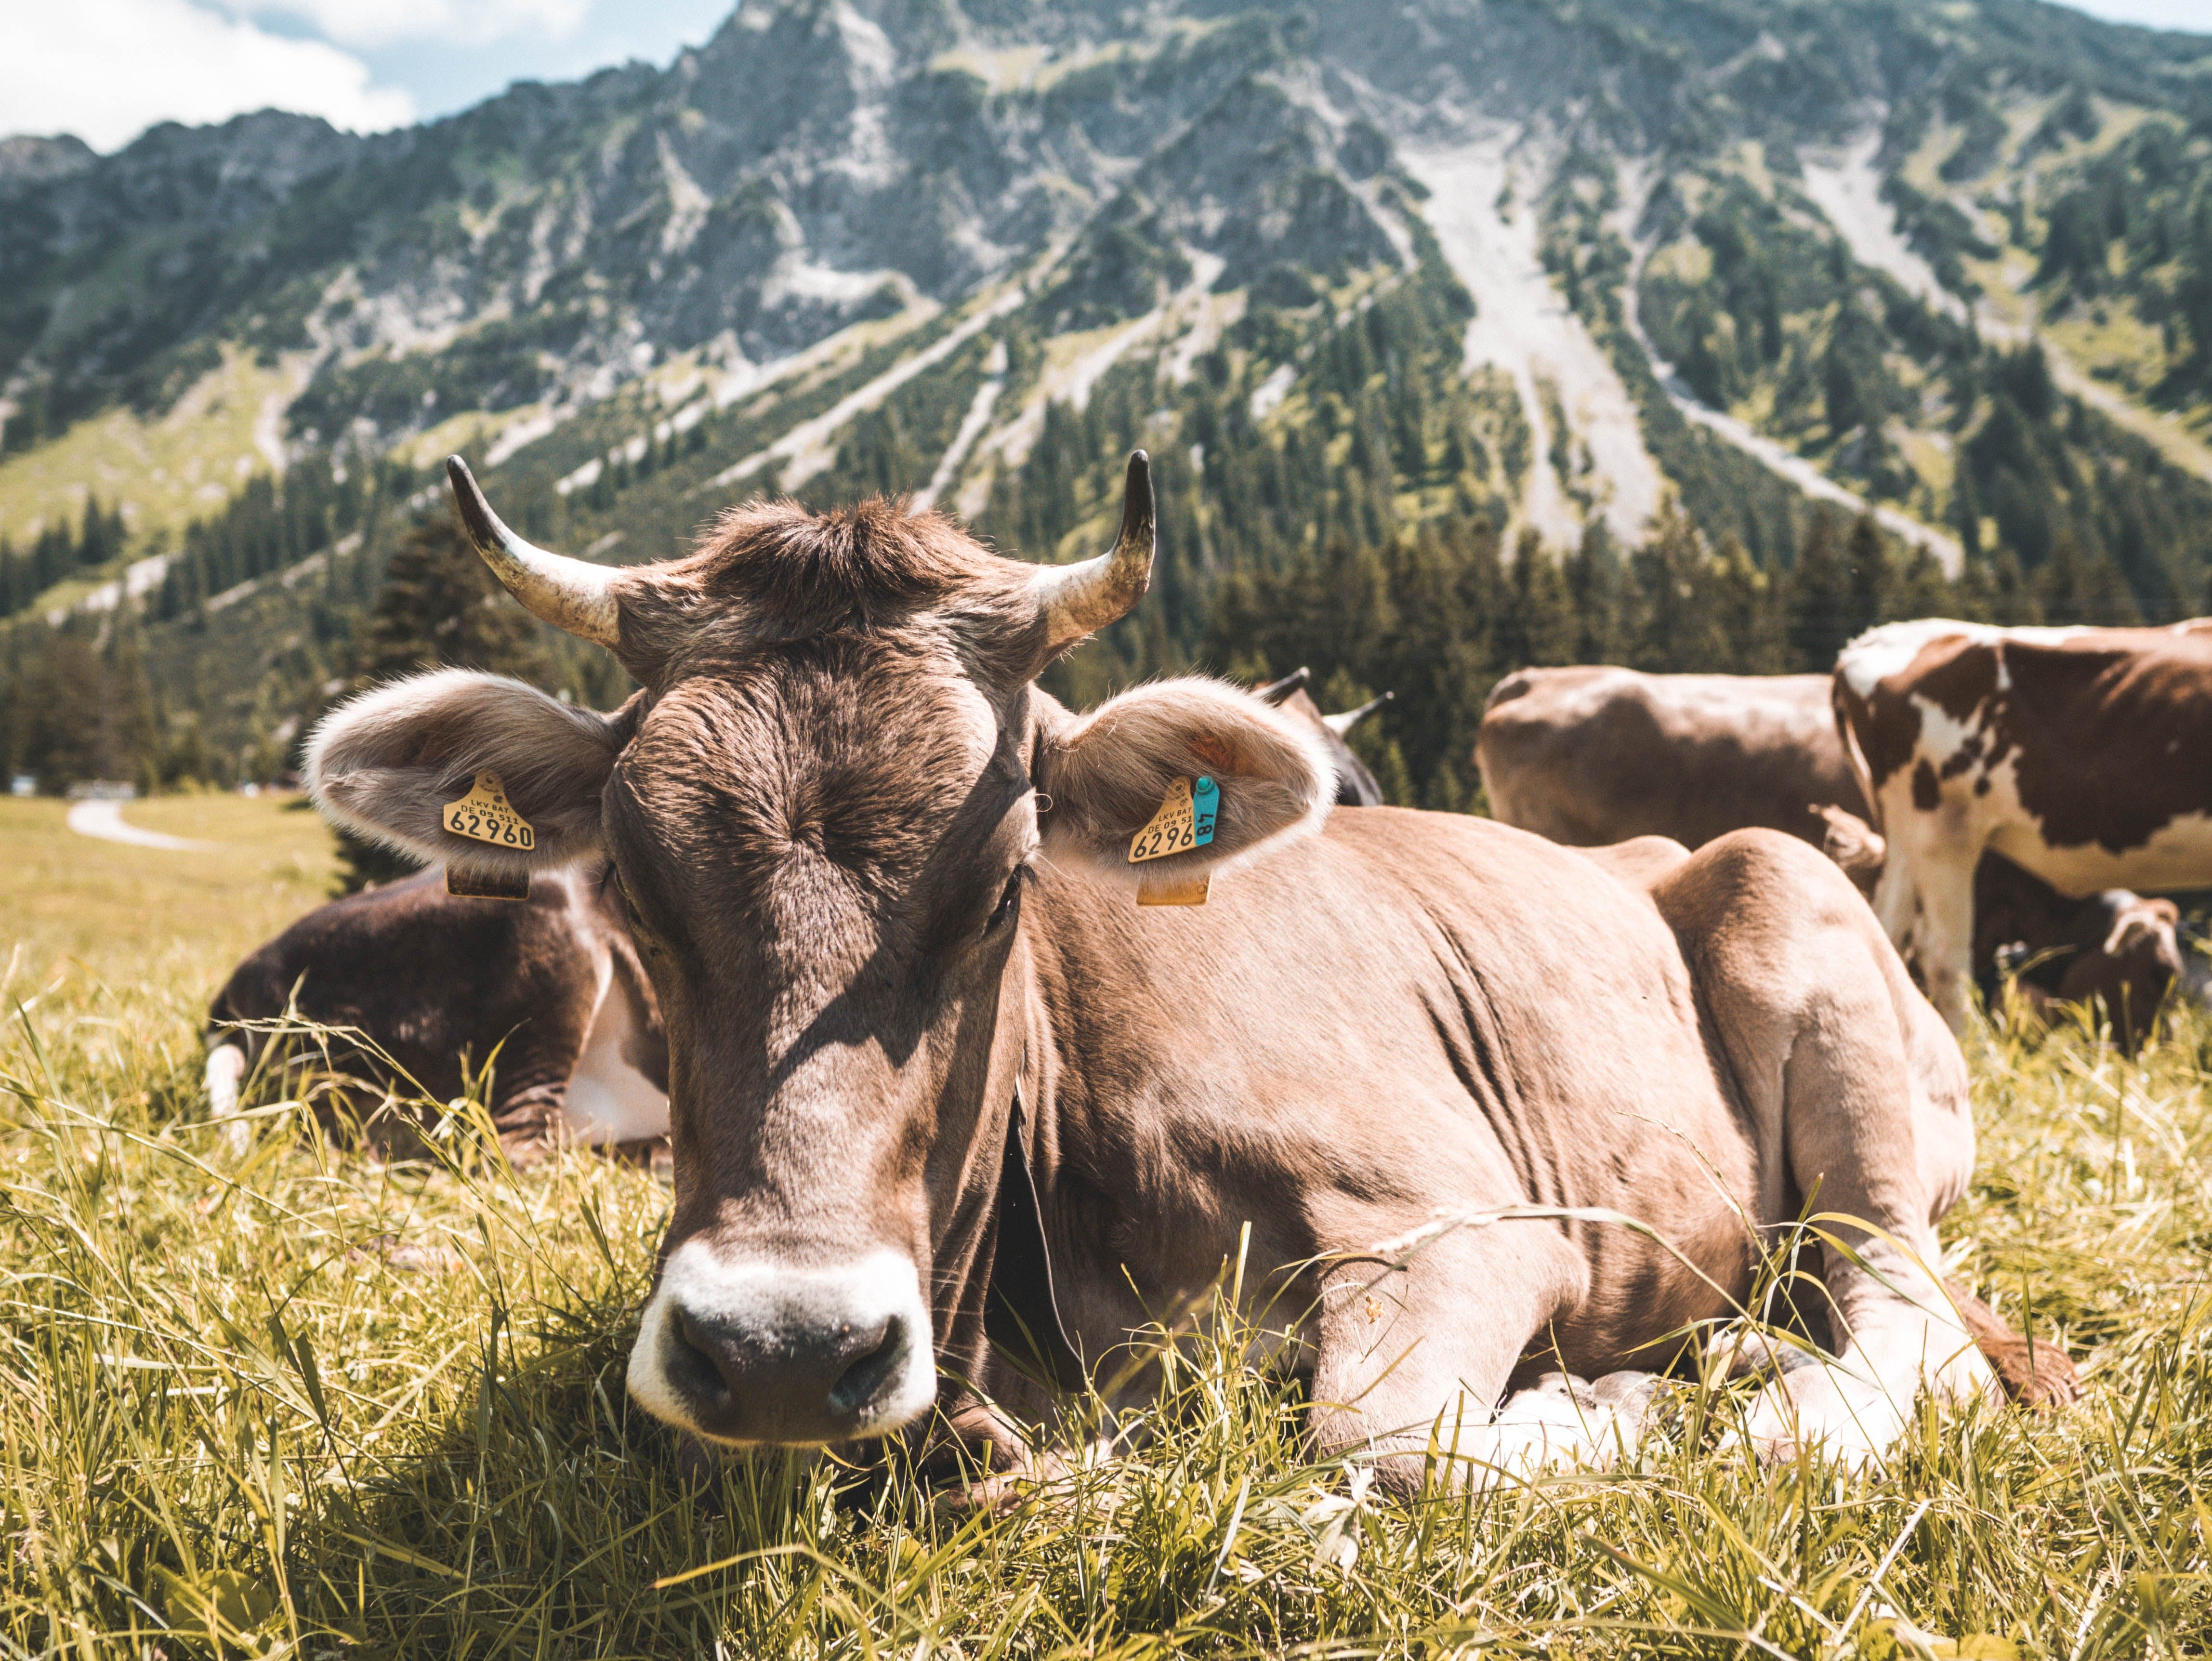 Brown Cattle on Grass at Daytime